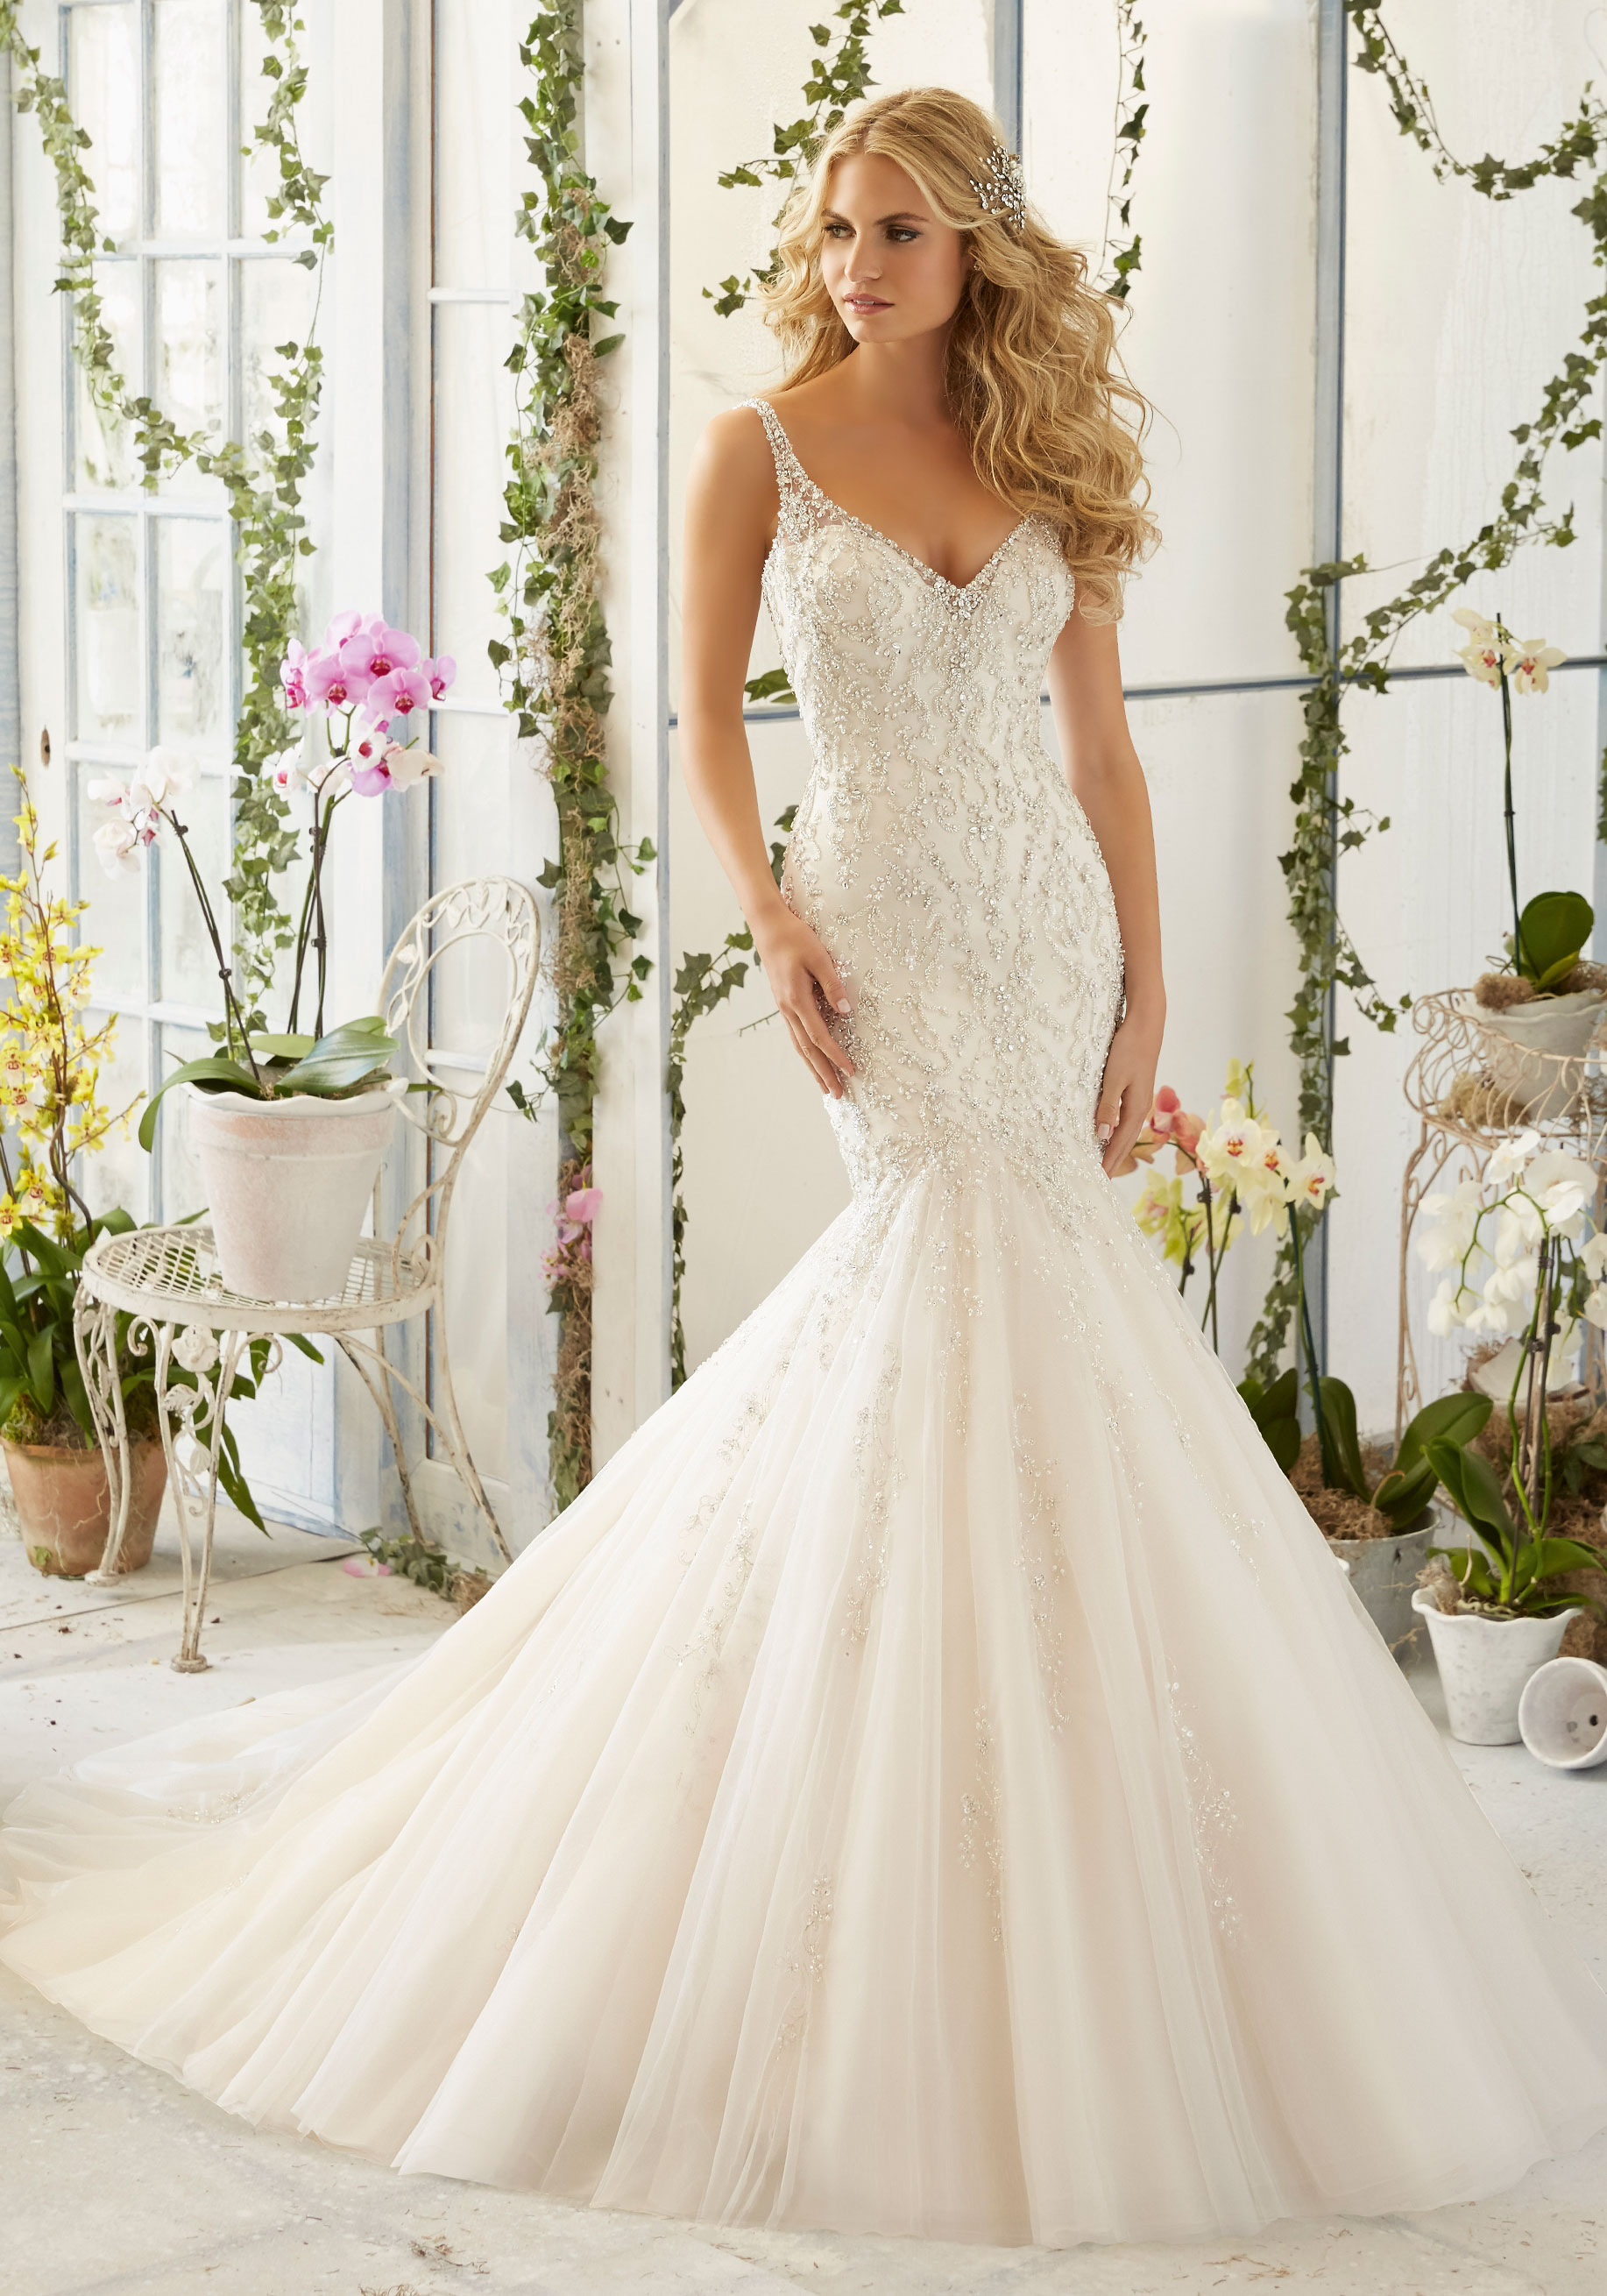 ea10e30ad72 Mori Lee Wedding Dress Clearance - Gomes Weine AG